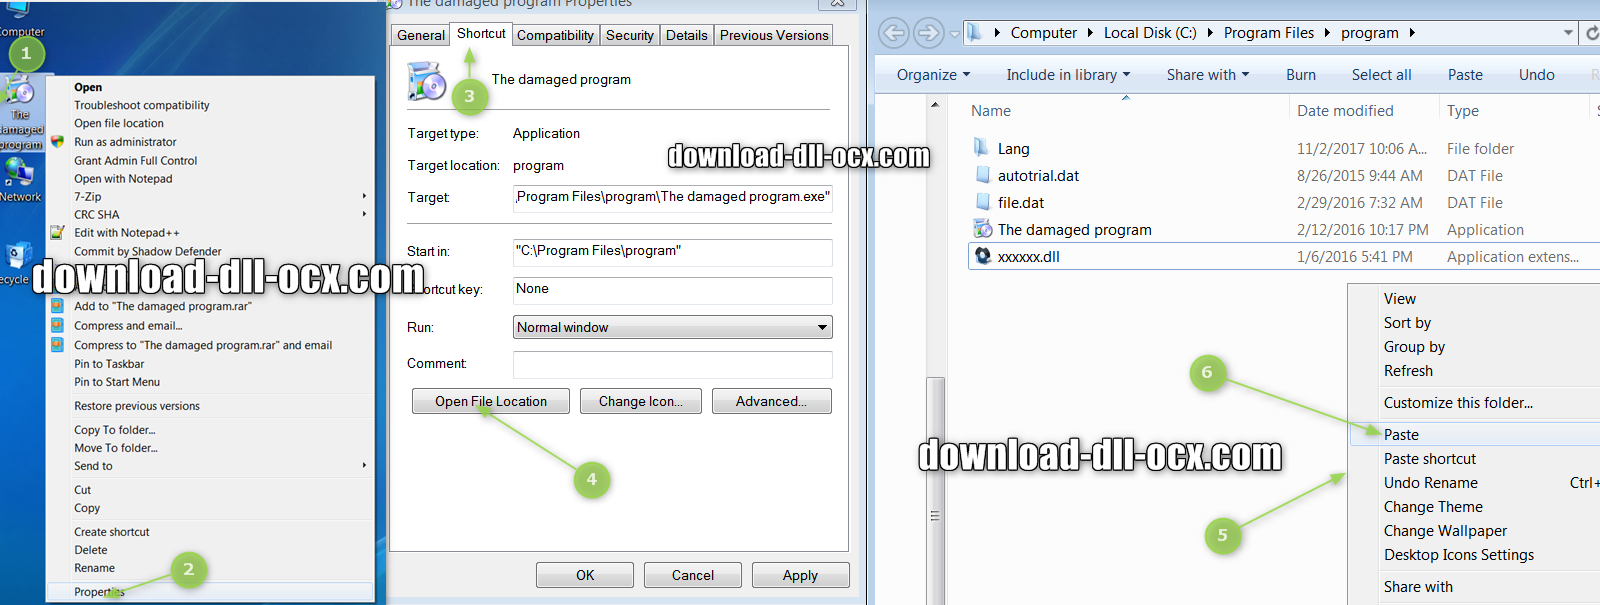 how to install Agt0419.dll file? for fix missing